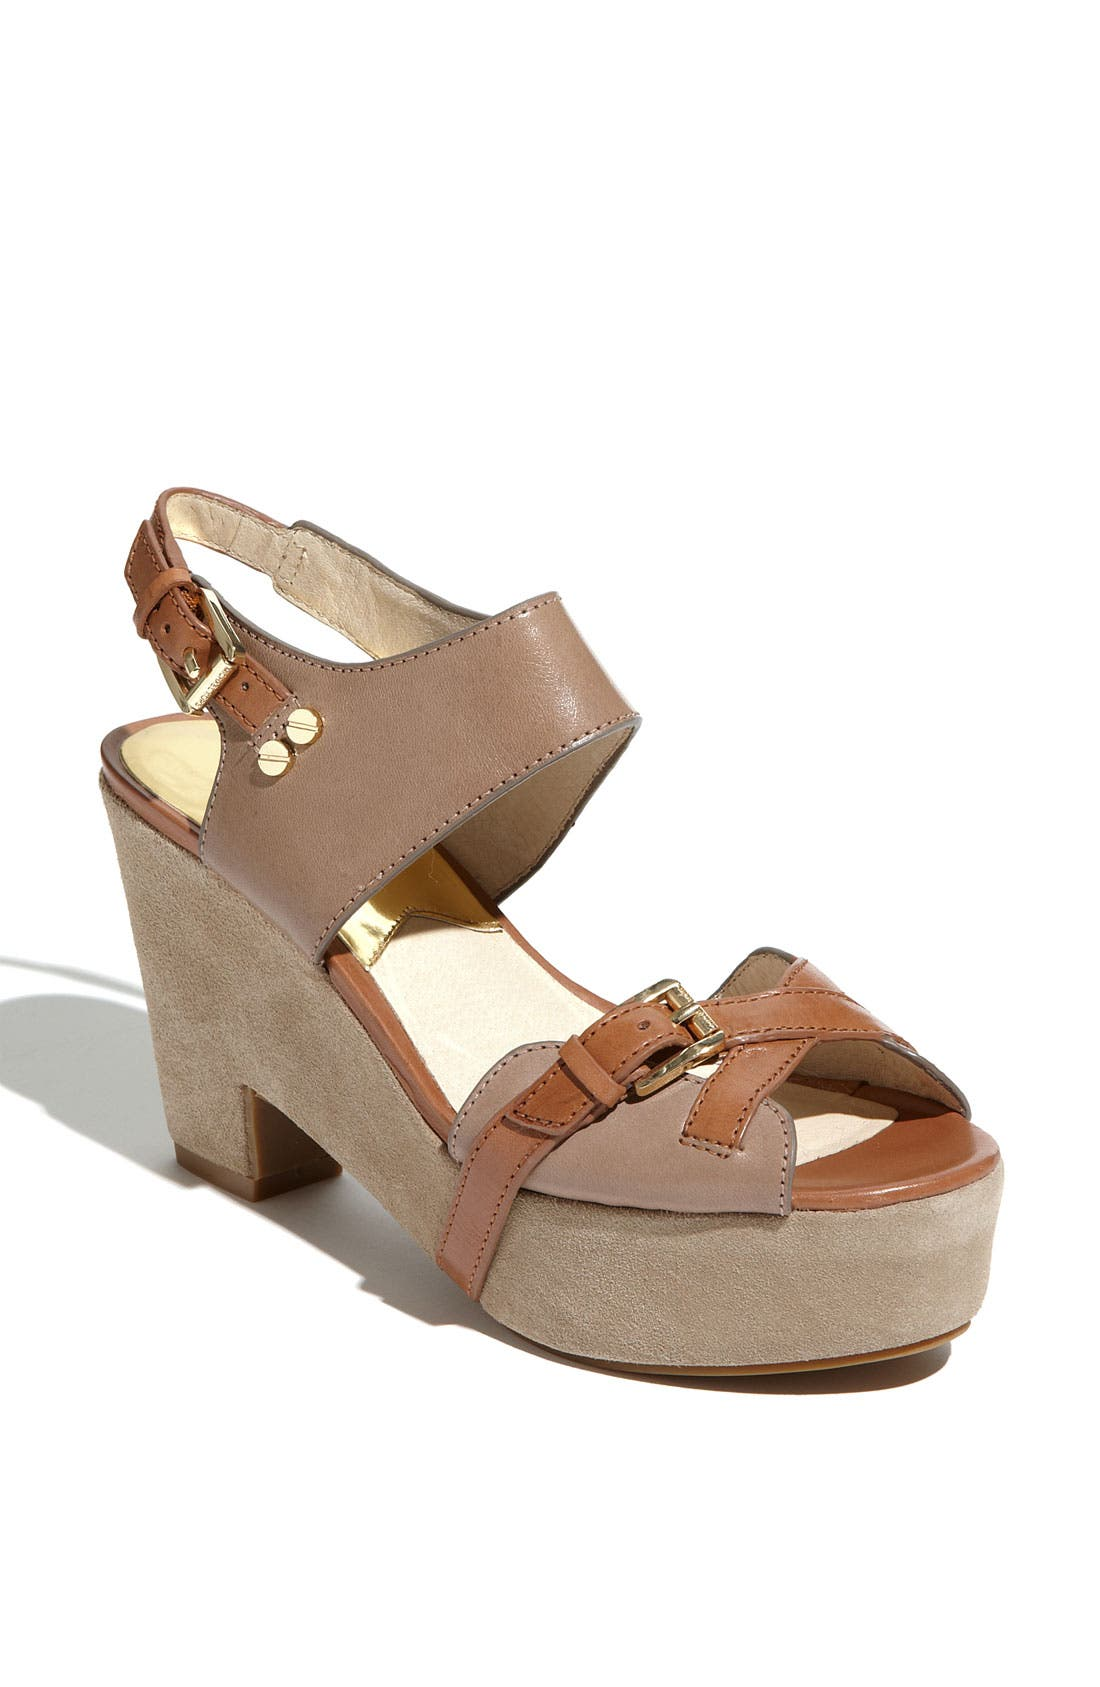 Alternate Image 1 Selected - MICHAEL Michael Kors 'Fallyn' Sandal